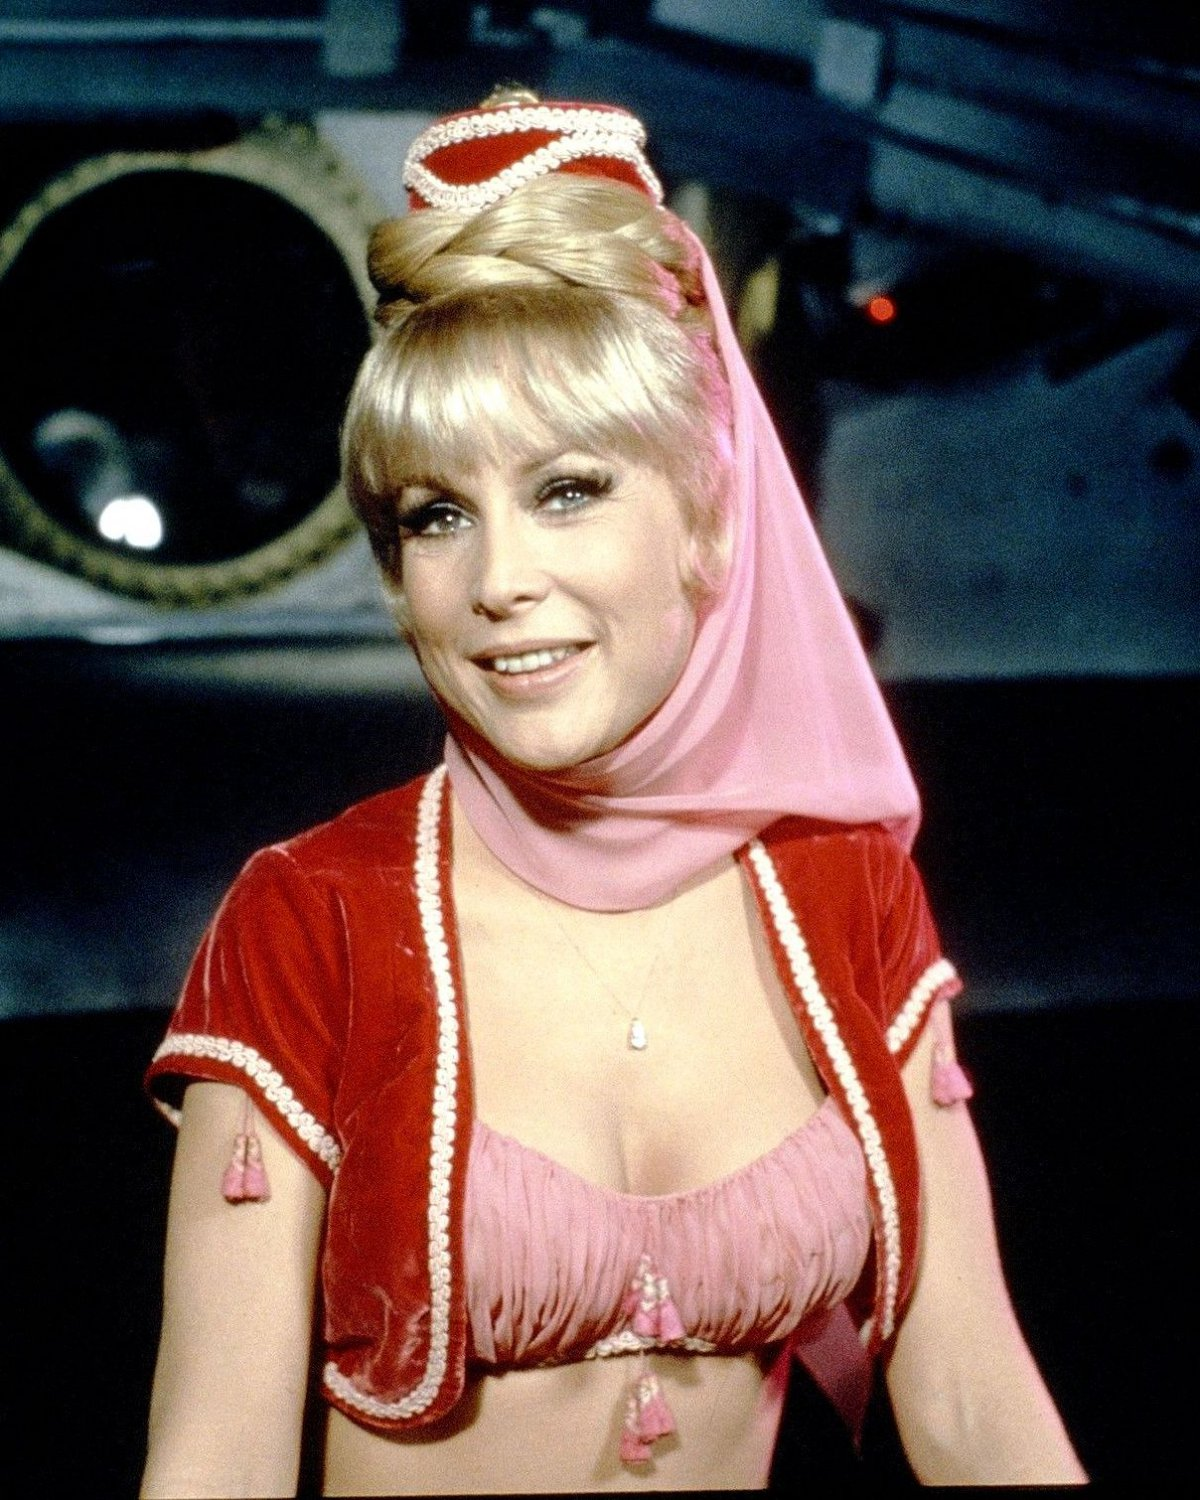 BARBARA EDEN IN 'I DREAM OF JEANNIE' - 8X10 PUBLICITY PHOTO (XBB-991)